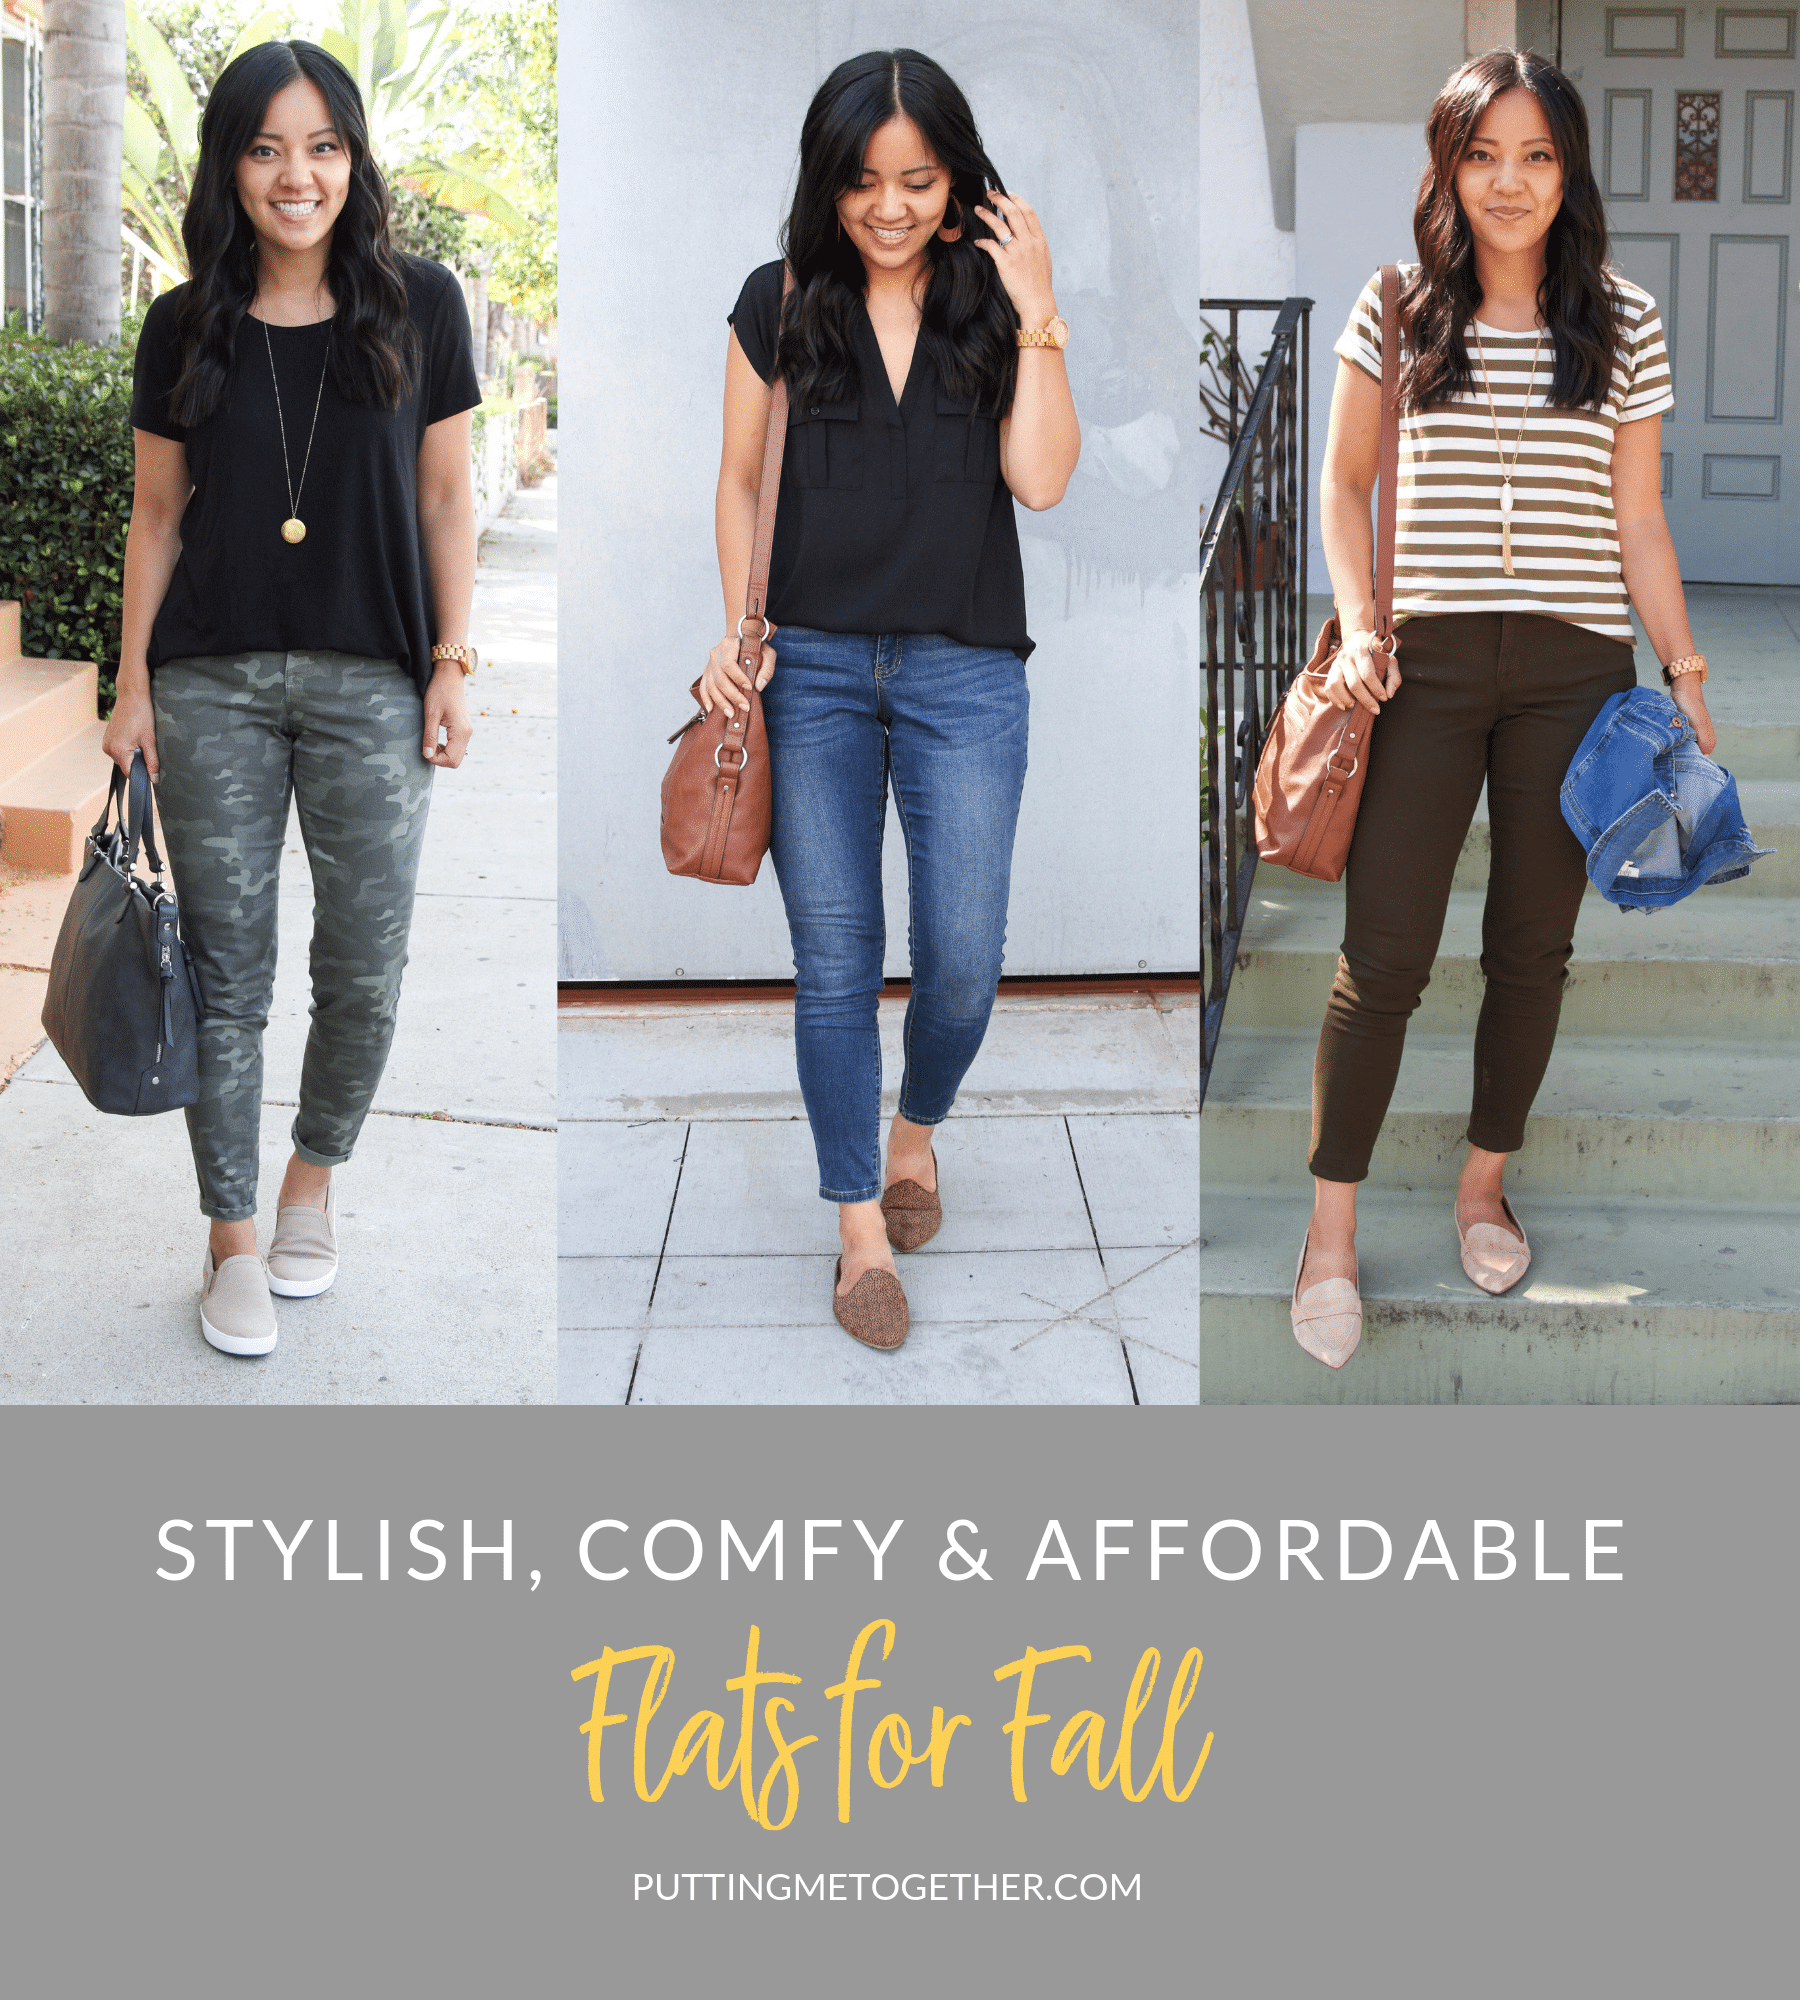 Stylish comfy and affordable flats for fall